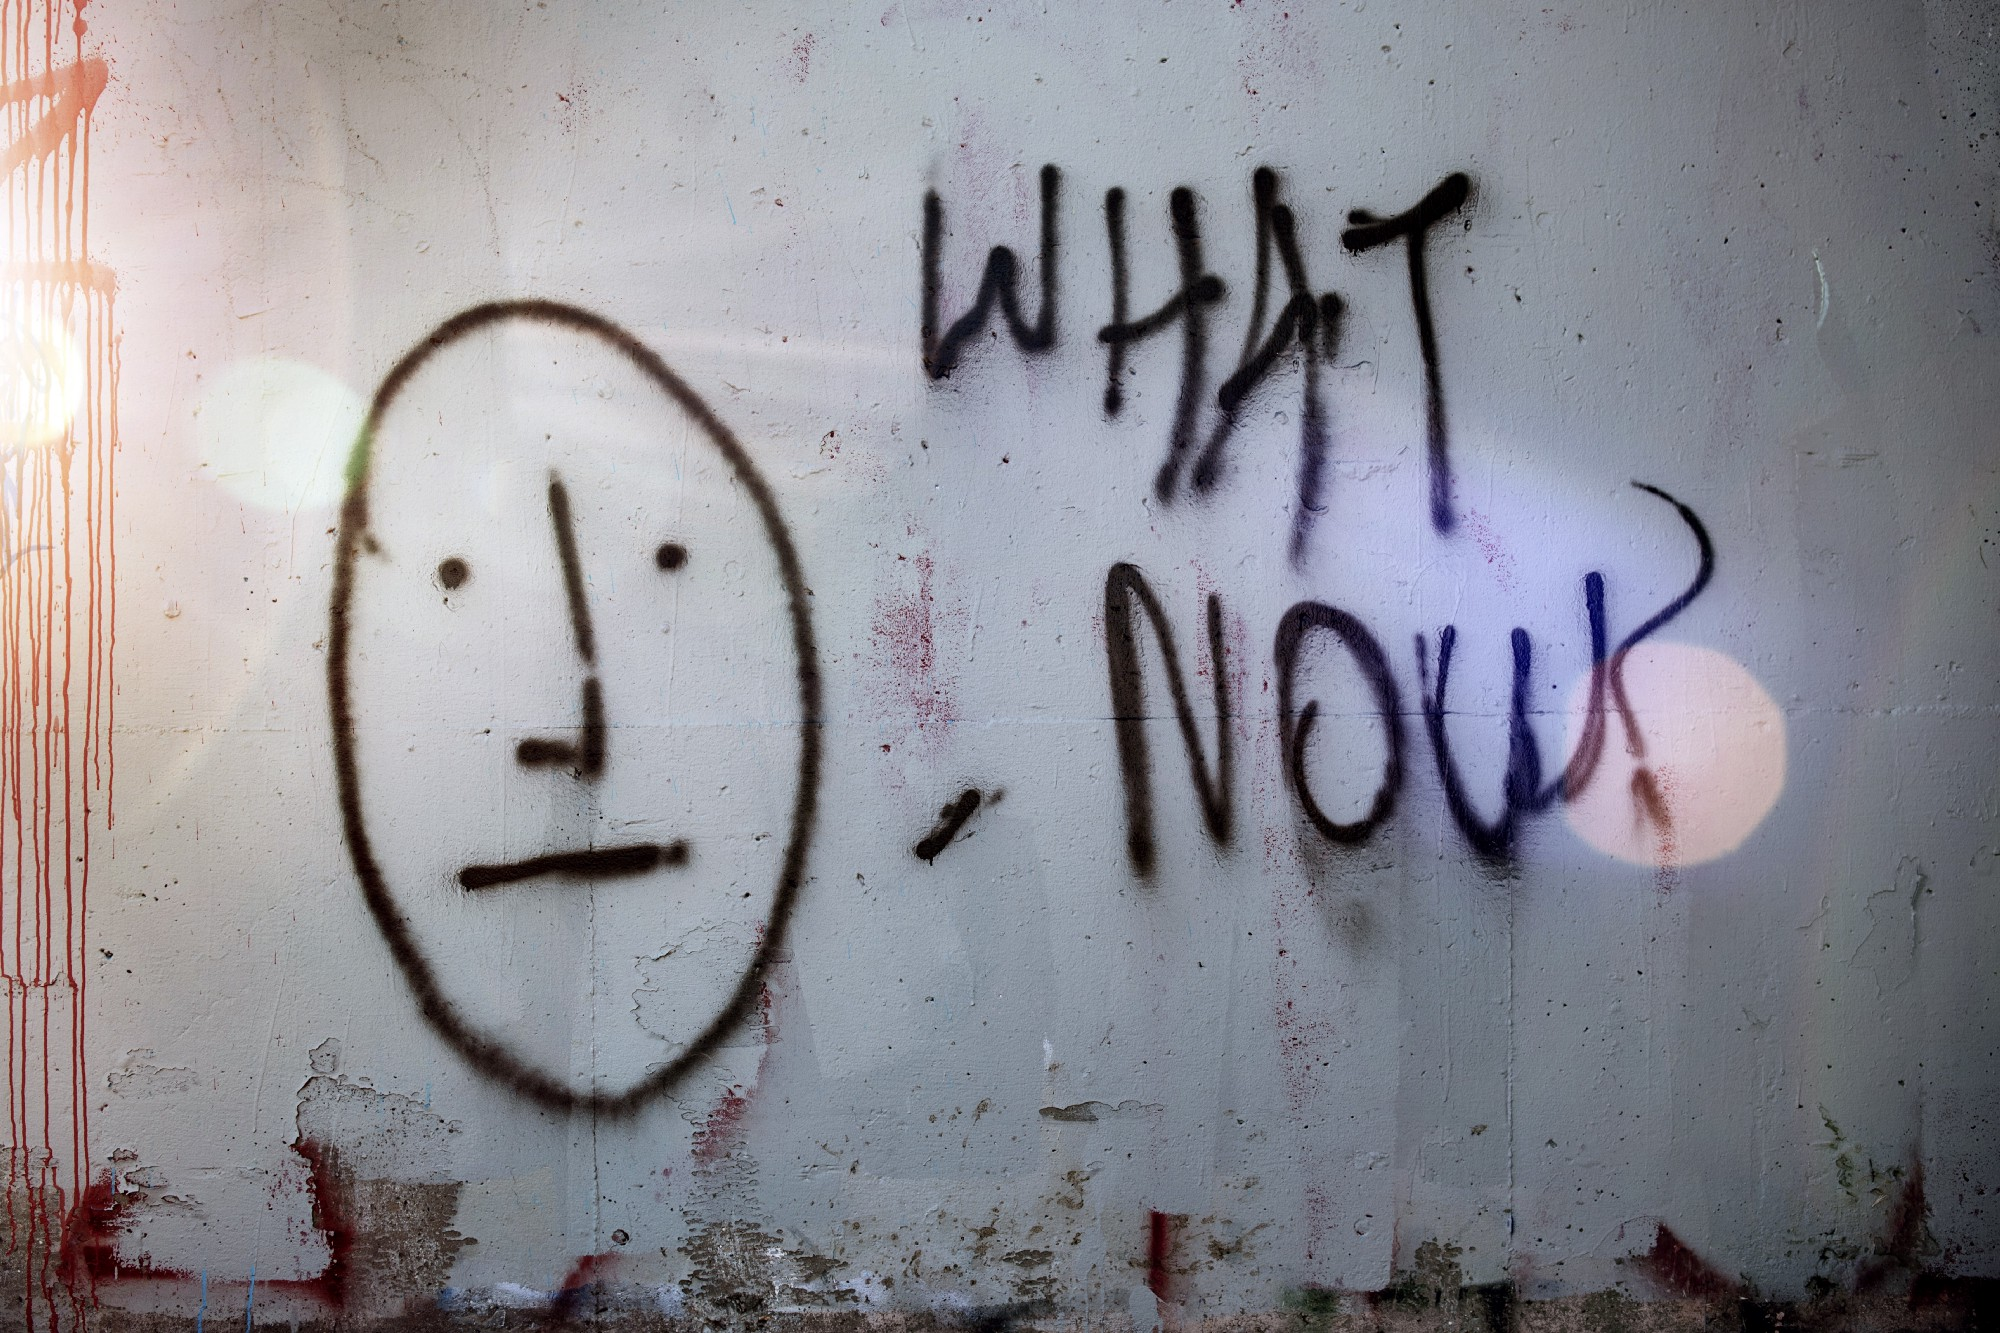 """the words """"what now"""" written on a concrete wall"""